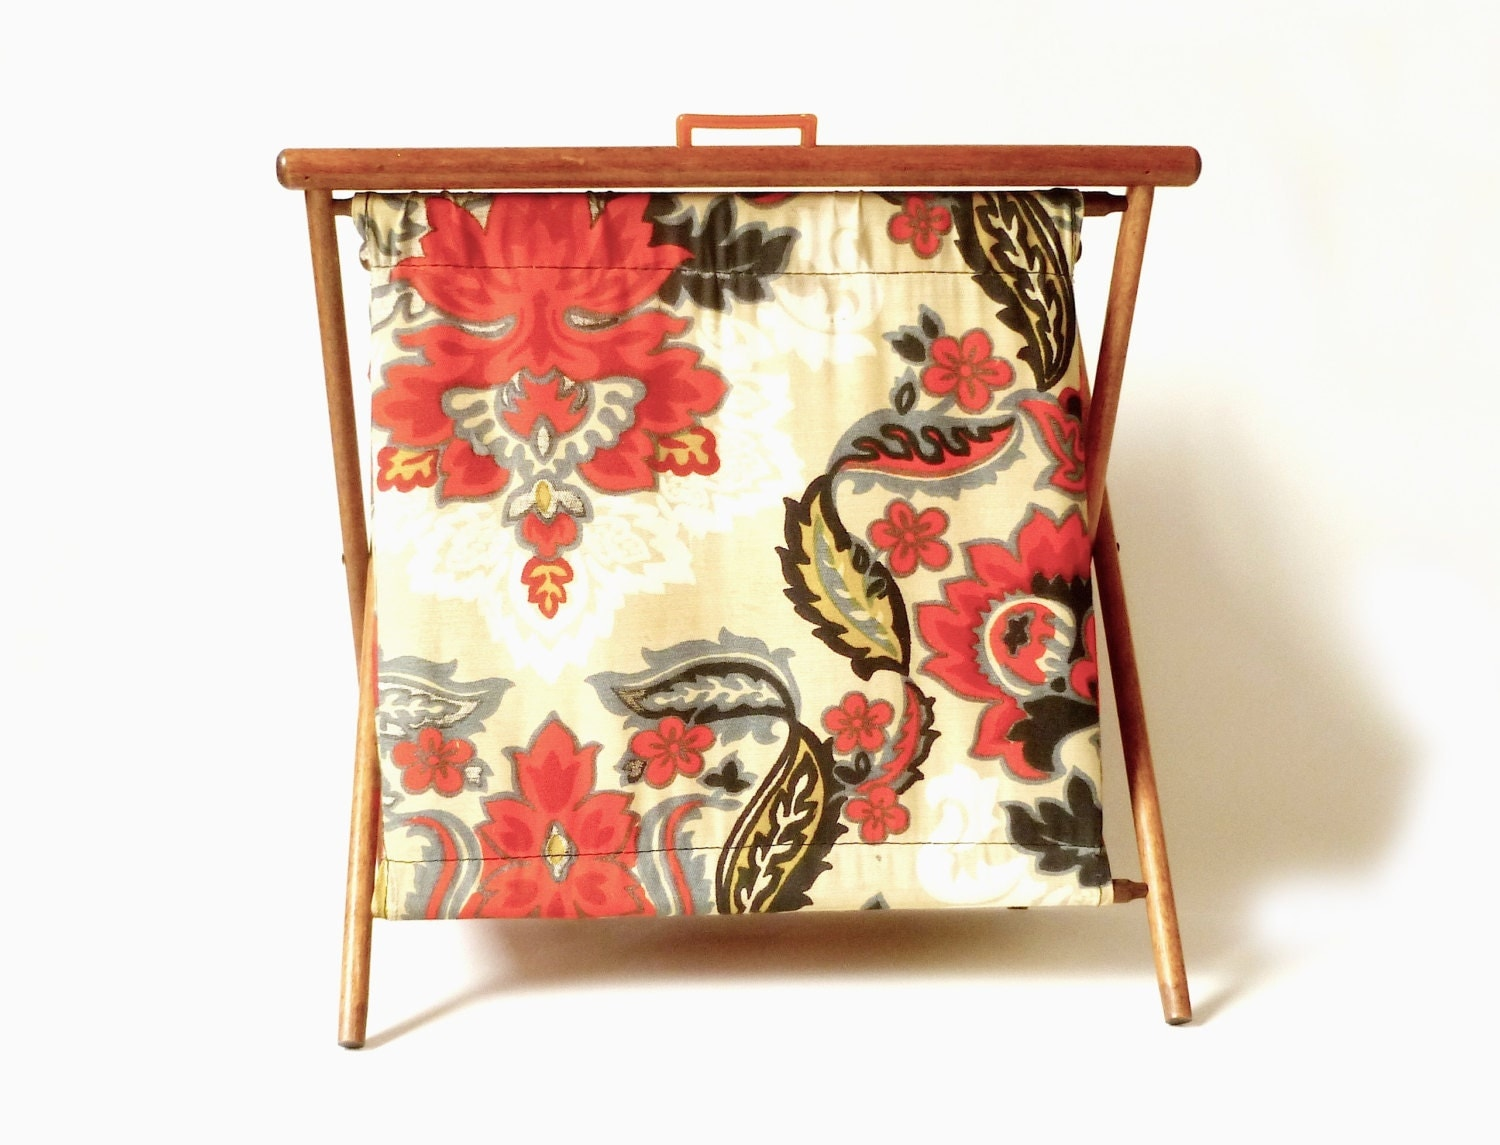 Vintage Knitting Bag : Vintage knitting bag standing folding floral by